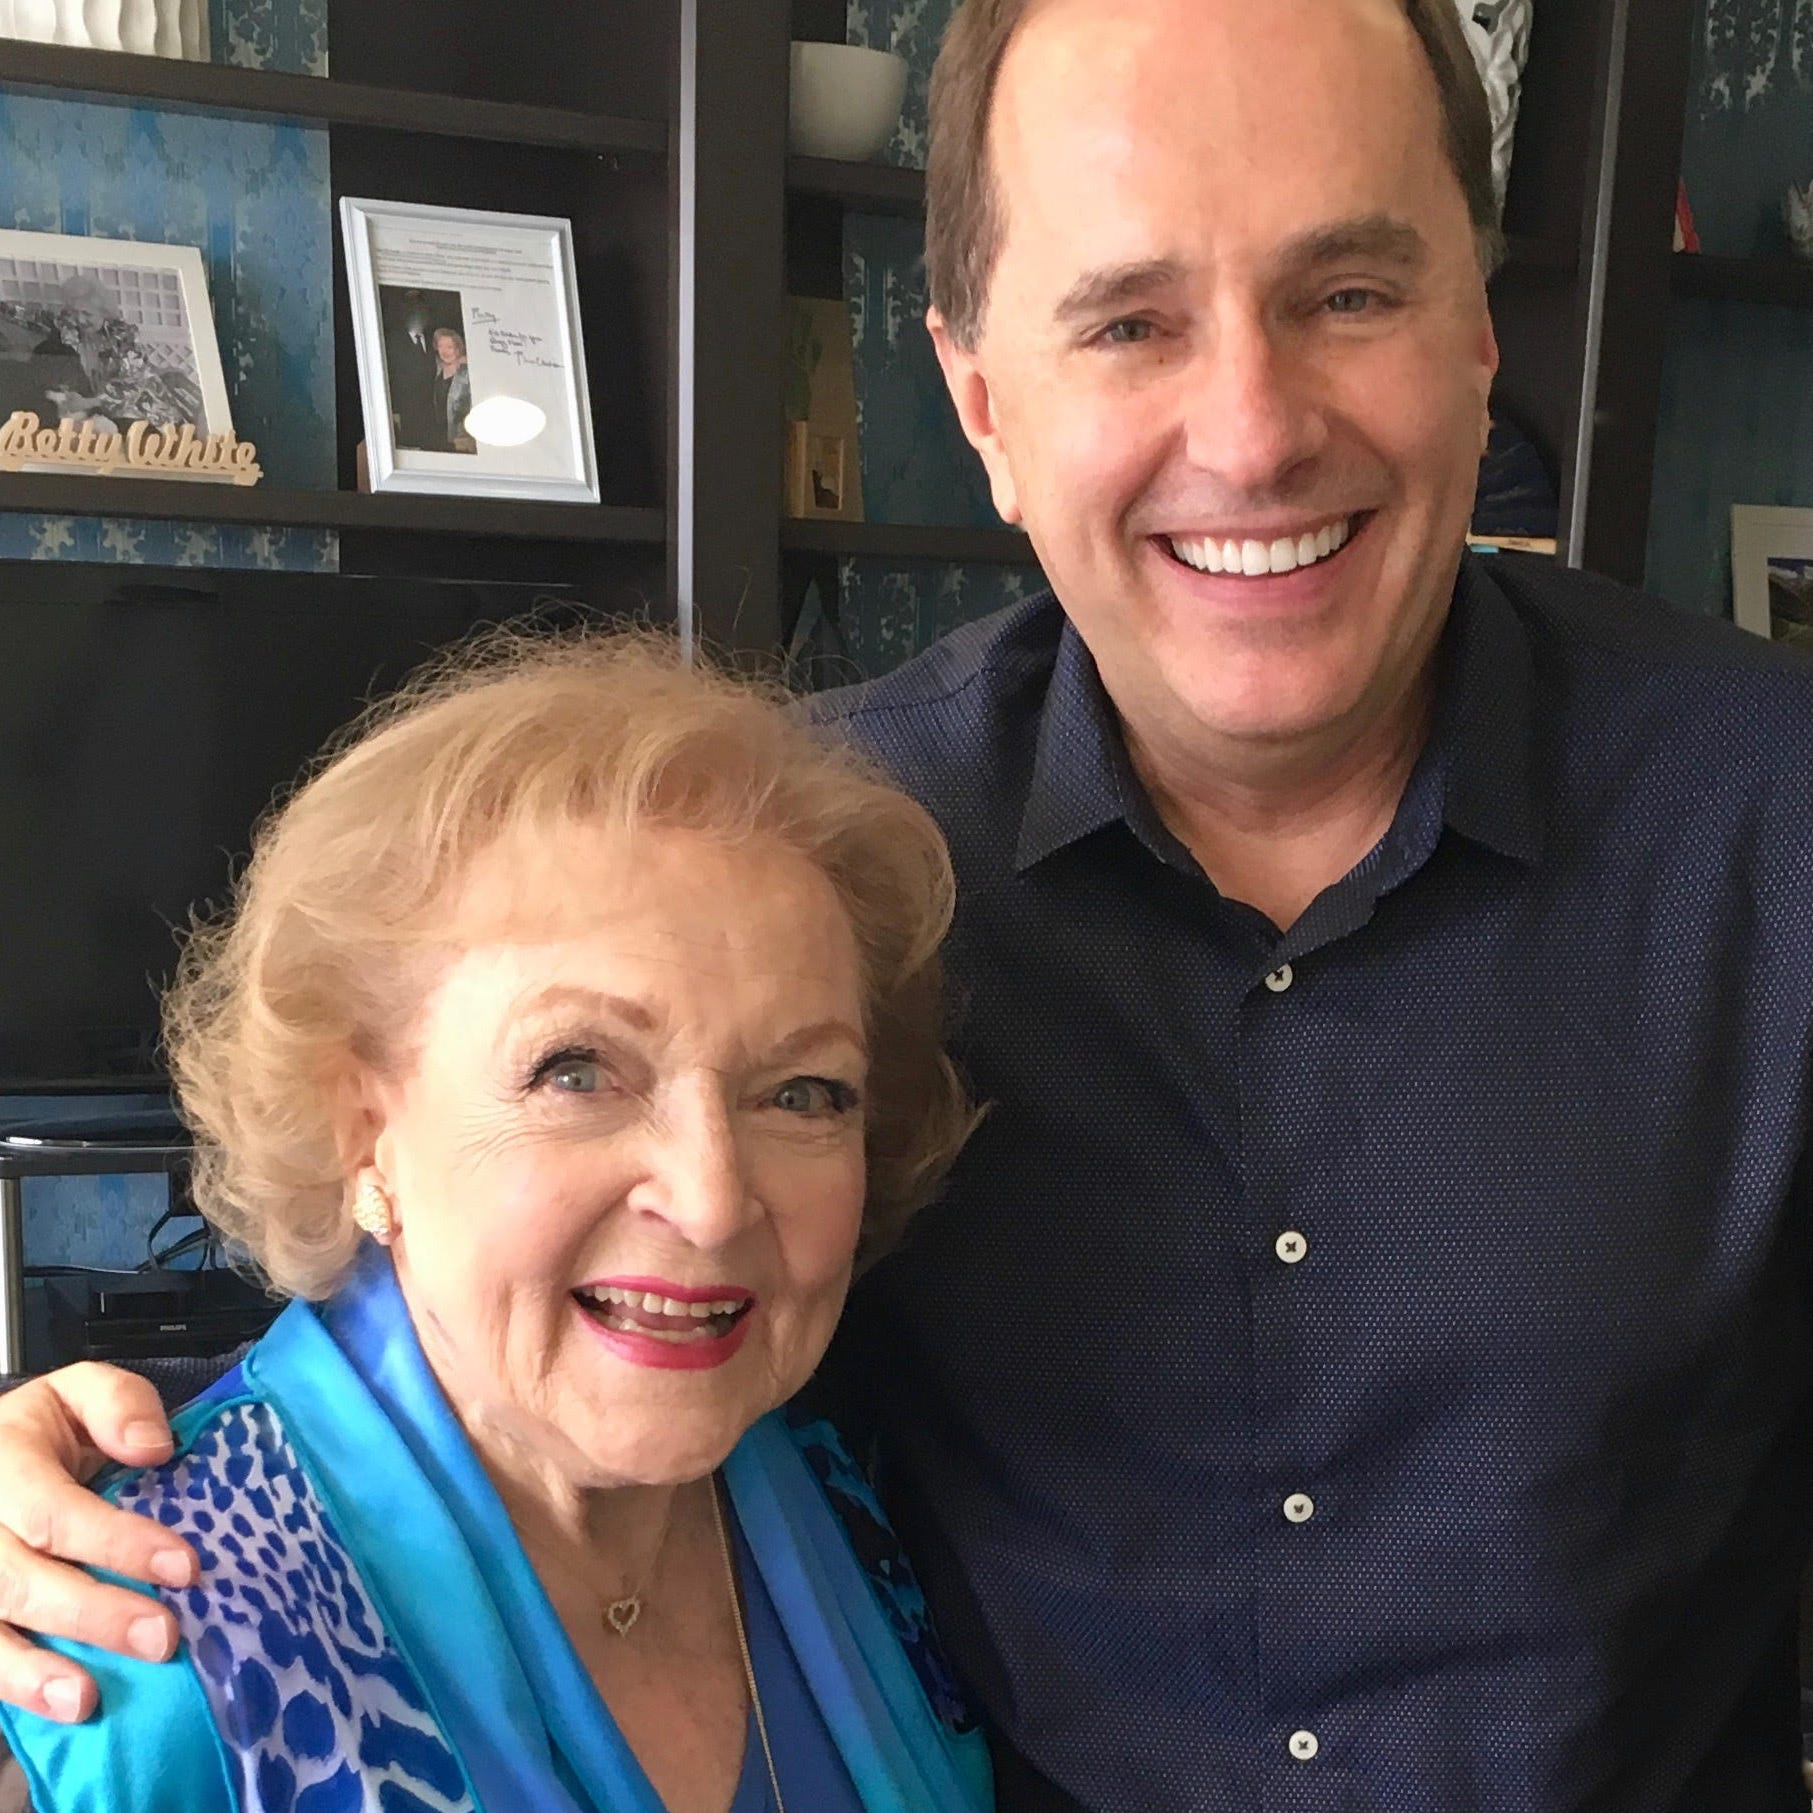 Film fest to feature Appleton native's doc on 'First Lady of Television' Betty White